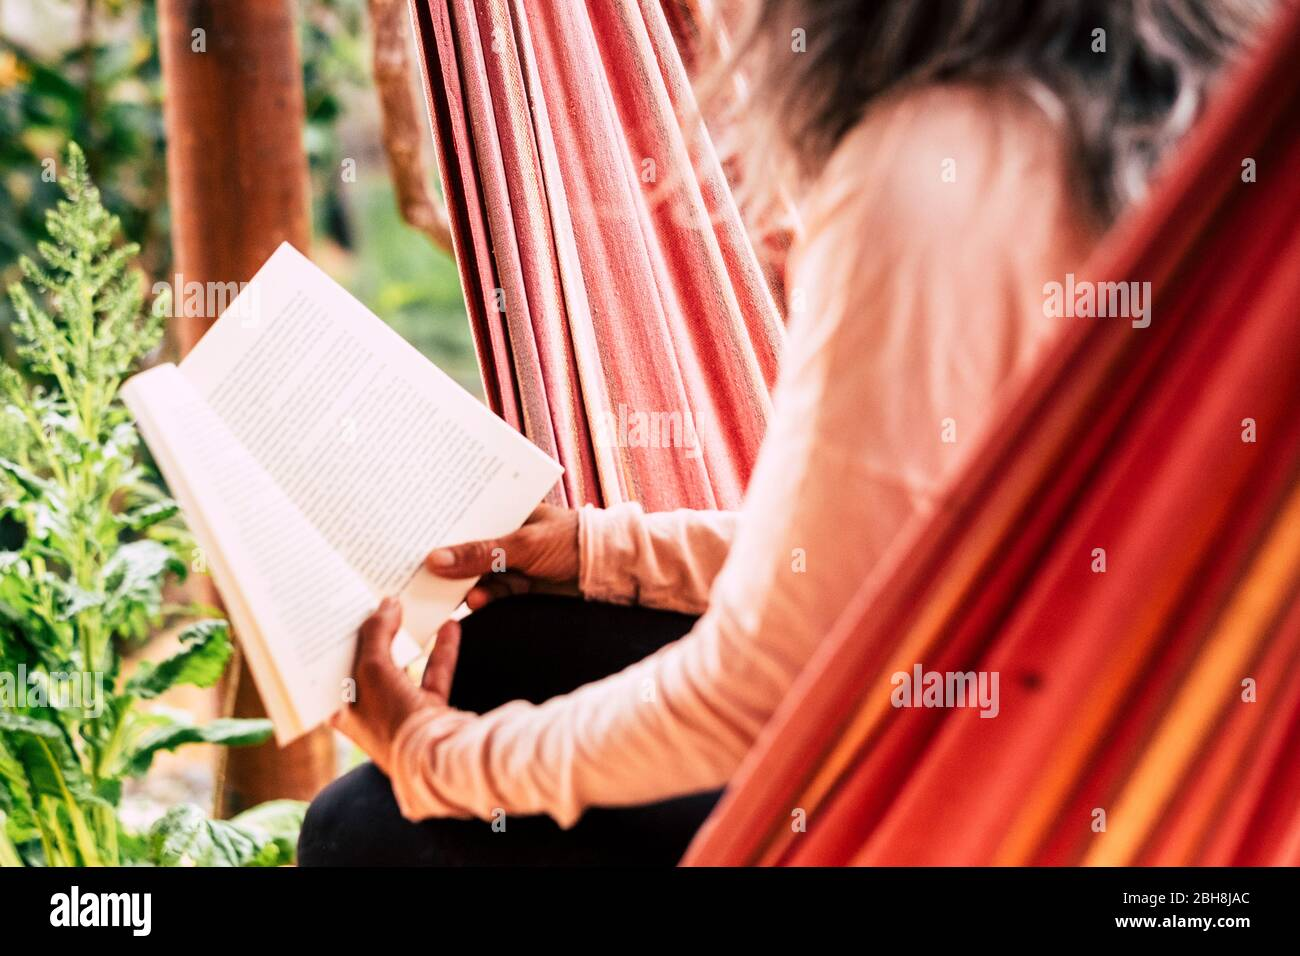 Reading a paper book old style concept to relax and study - aged caucsian woman with white hair sitting on an hammock outdoor enjoy the leisure activity Stock Photo